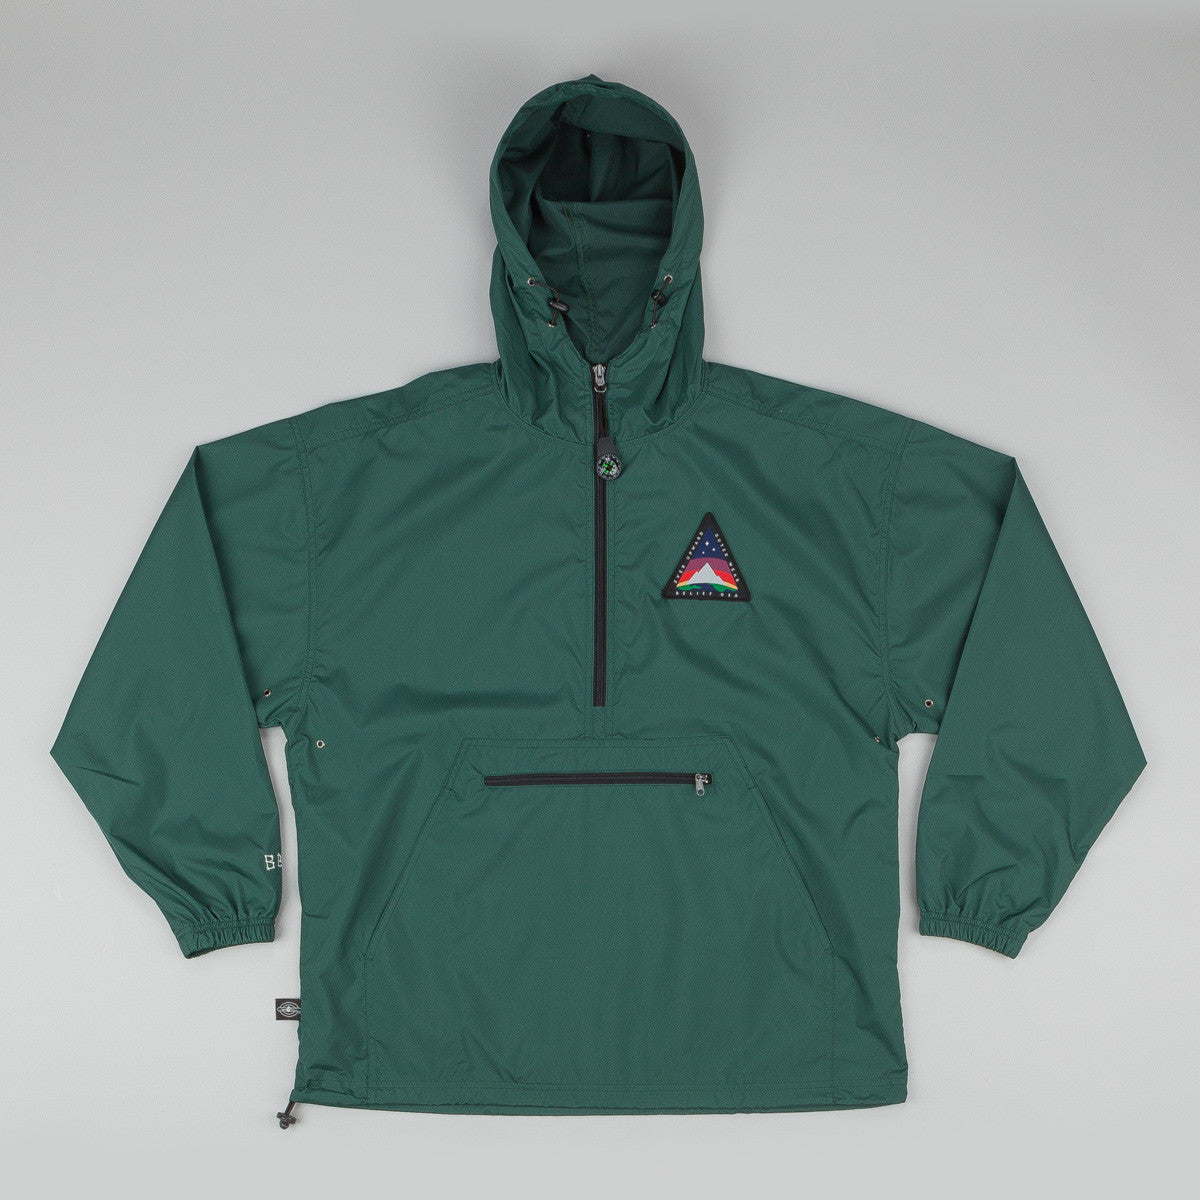 Belief Northern Windbreaker Jacket